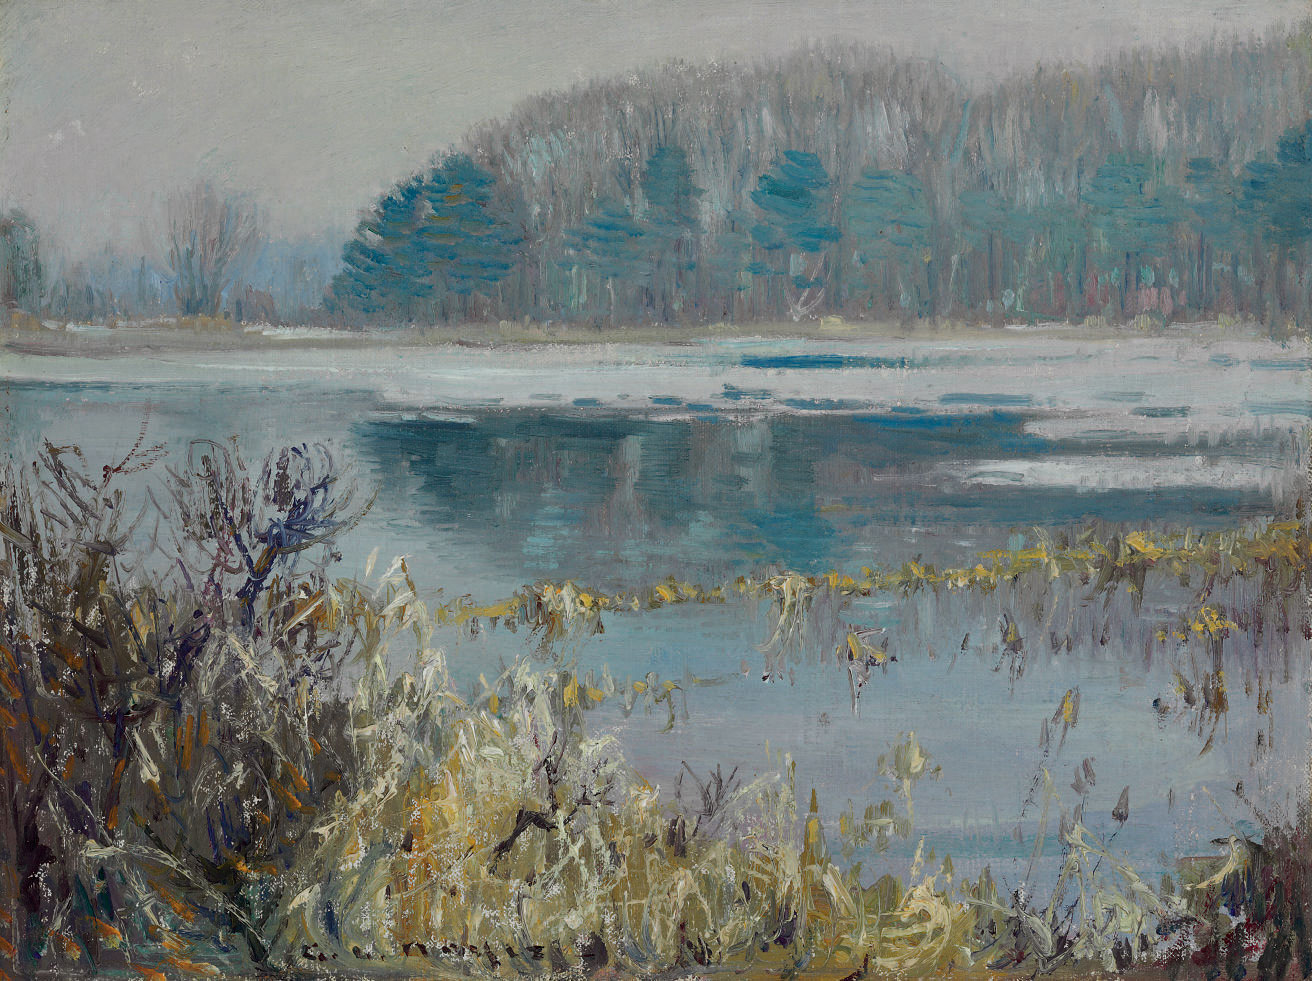 The End of Winter, Medfield